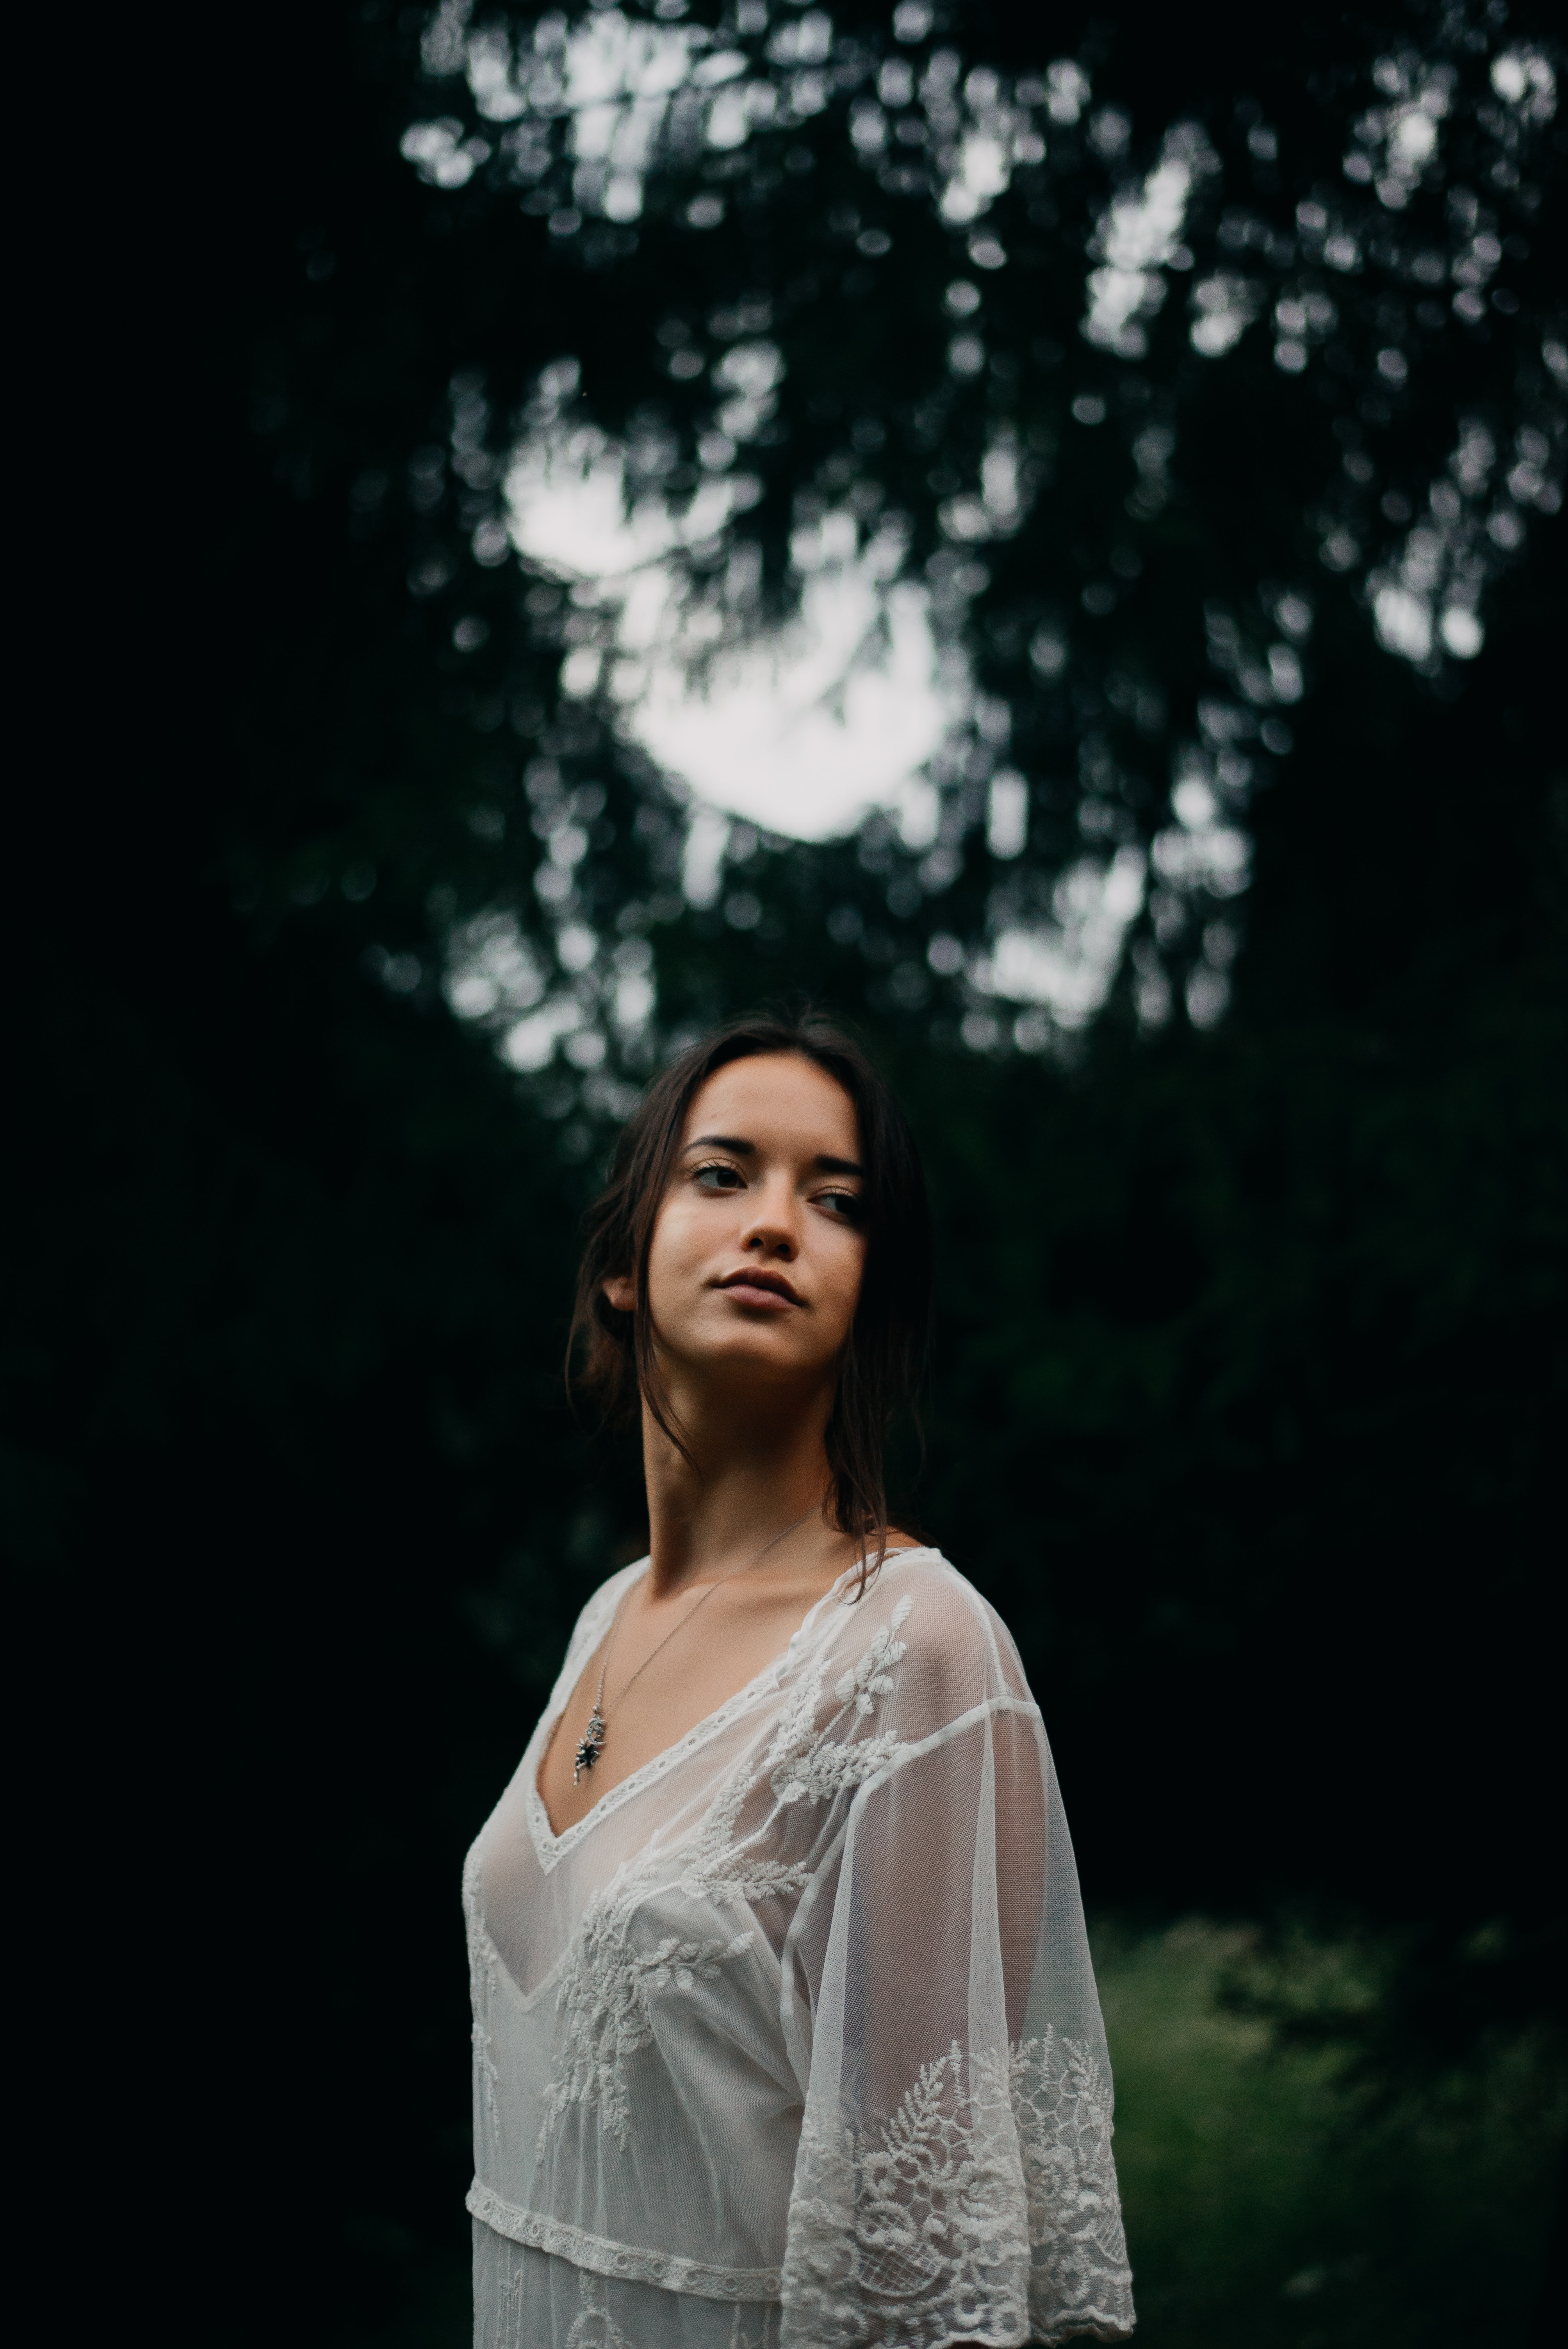 selective focus photography of woman standing near trees wearing white sheer top